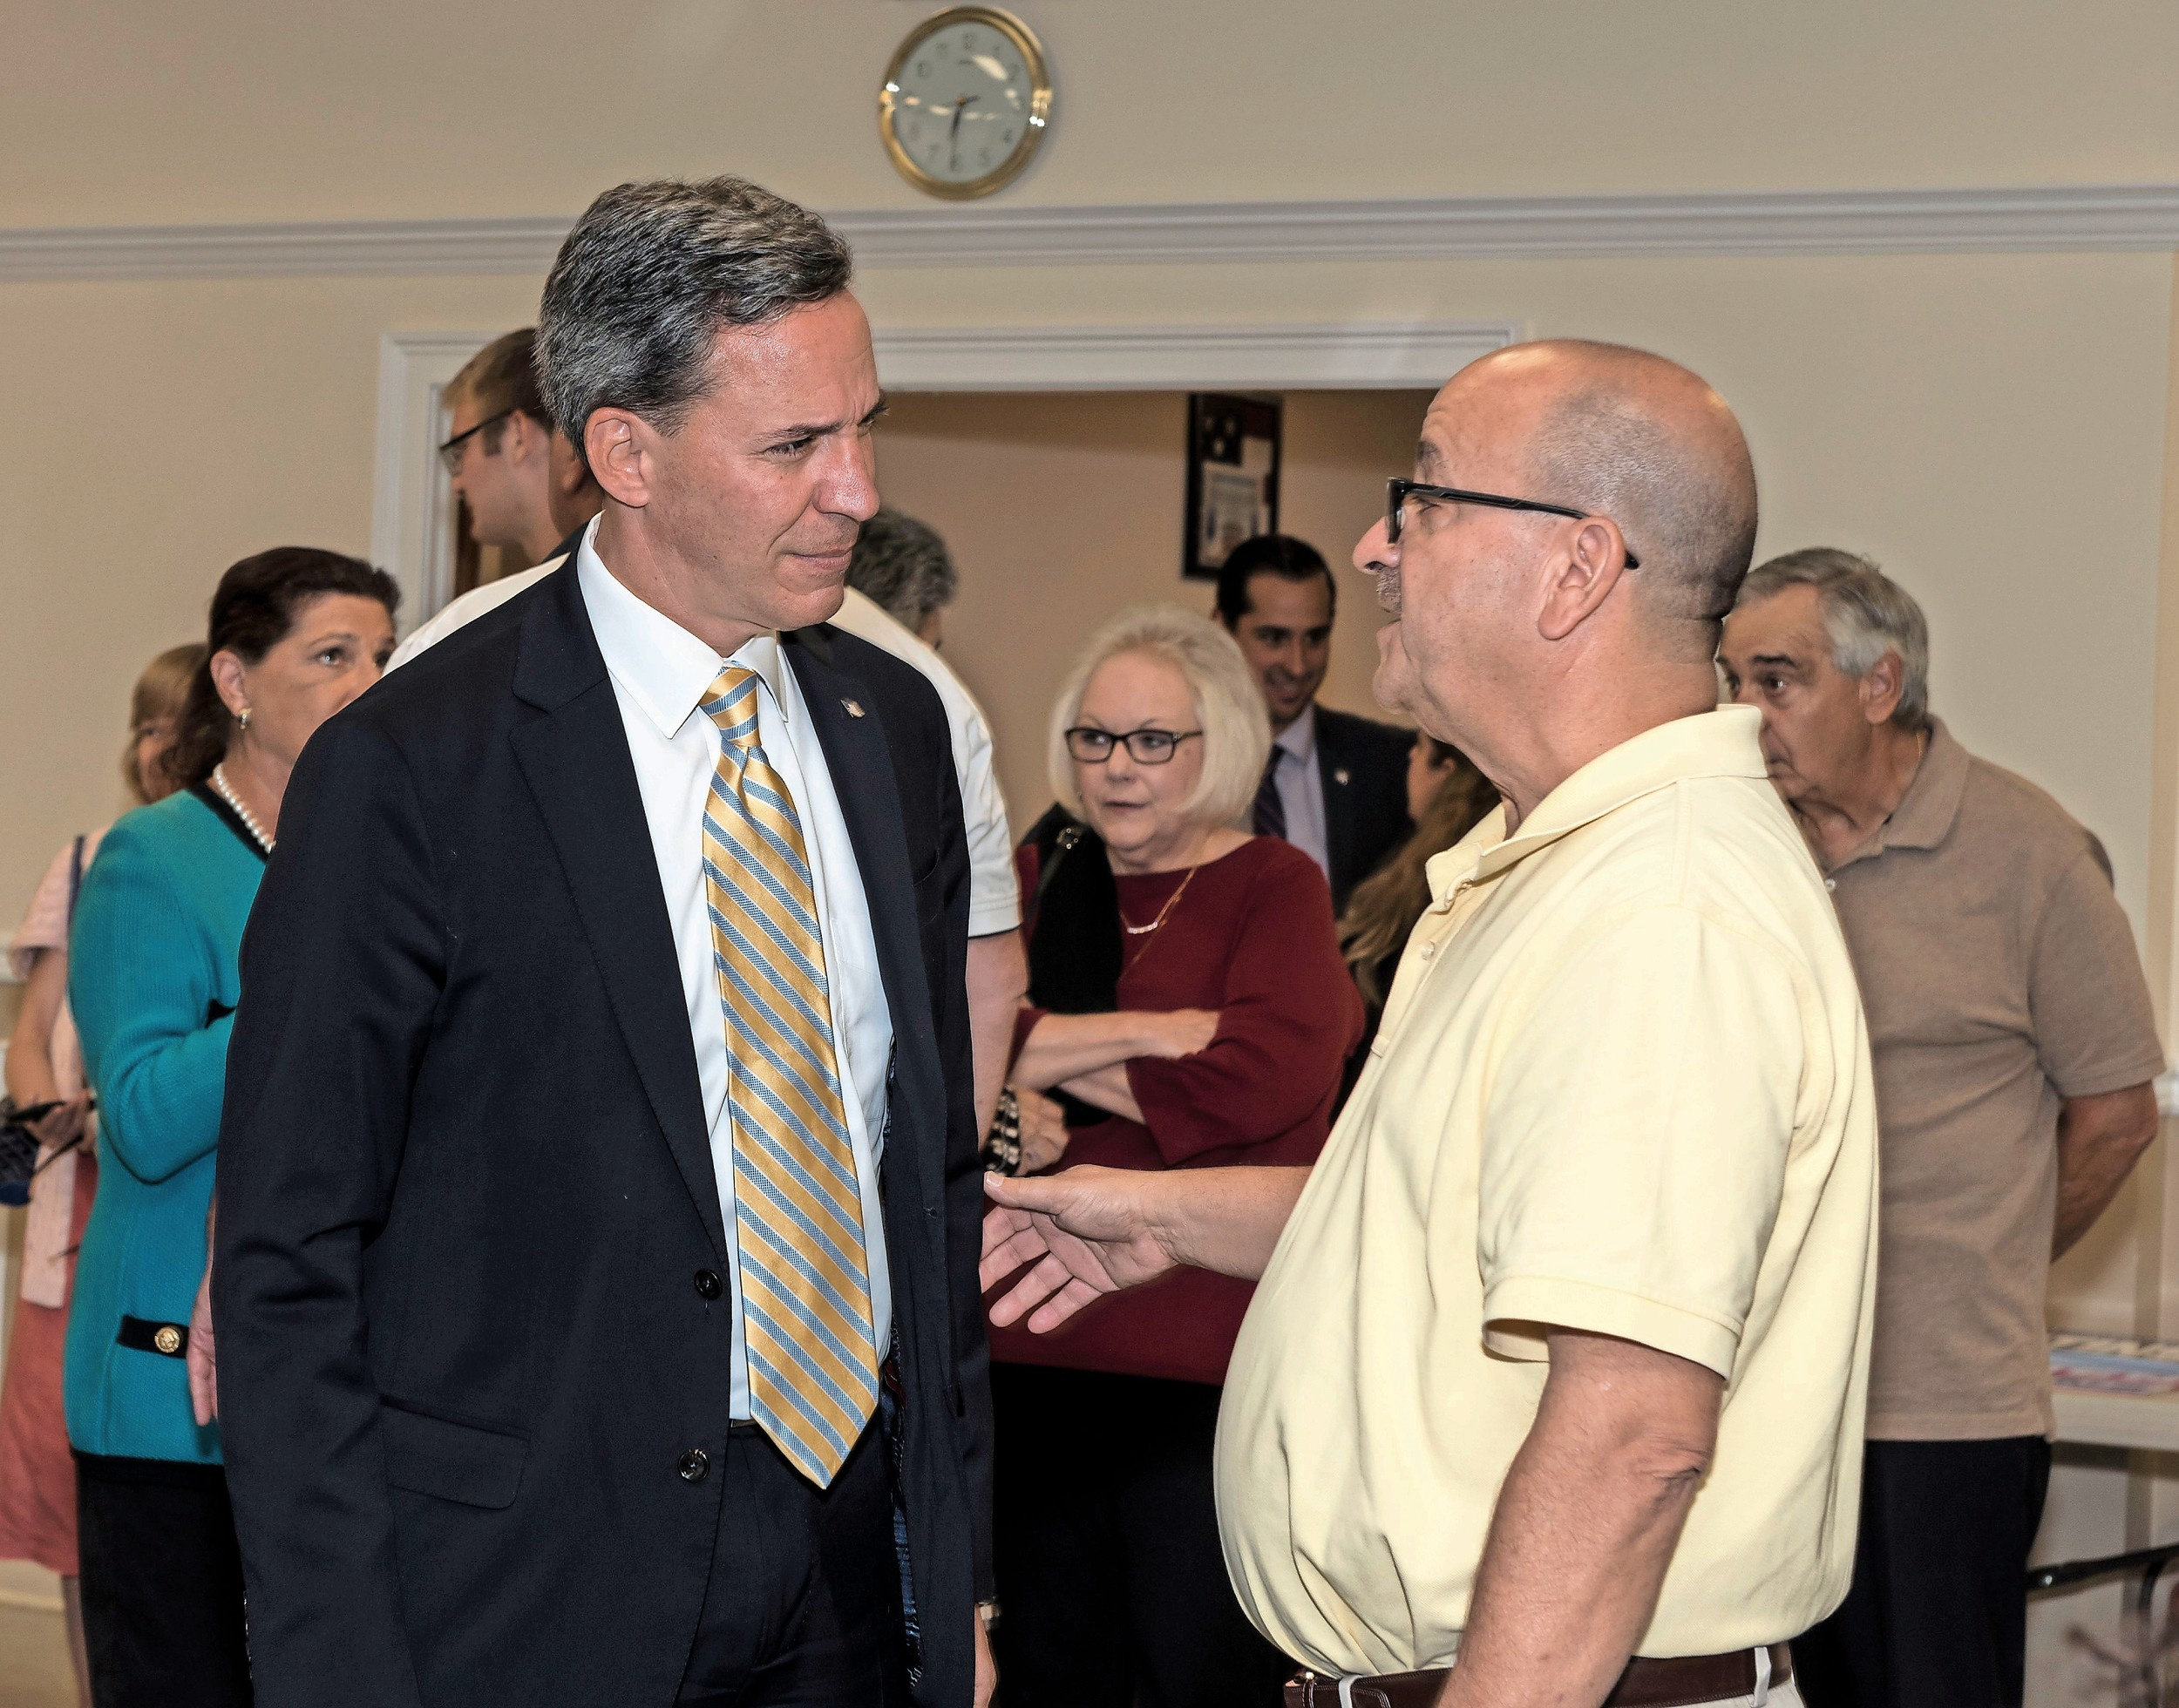 Sen. Jack Martins, left, met with residents and local leaders in Glen Cove, including the Glen Cove Republican Club's executive leader, David Zatlin, as Martin campaigned for county executive.